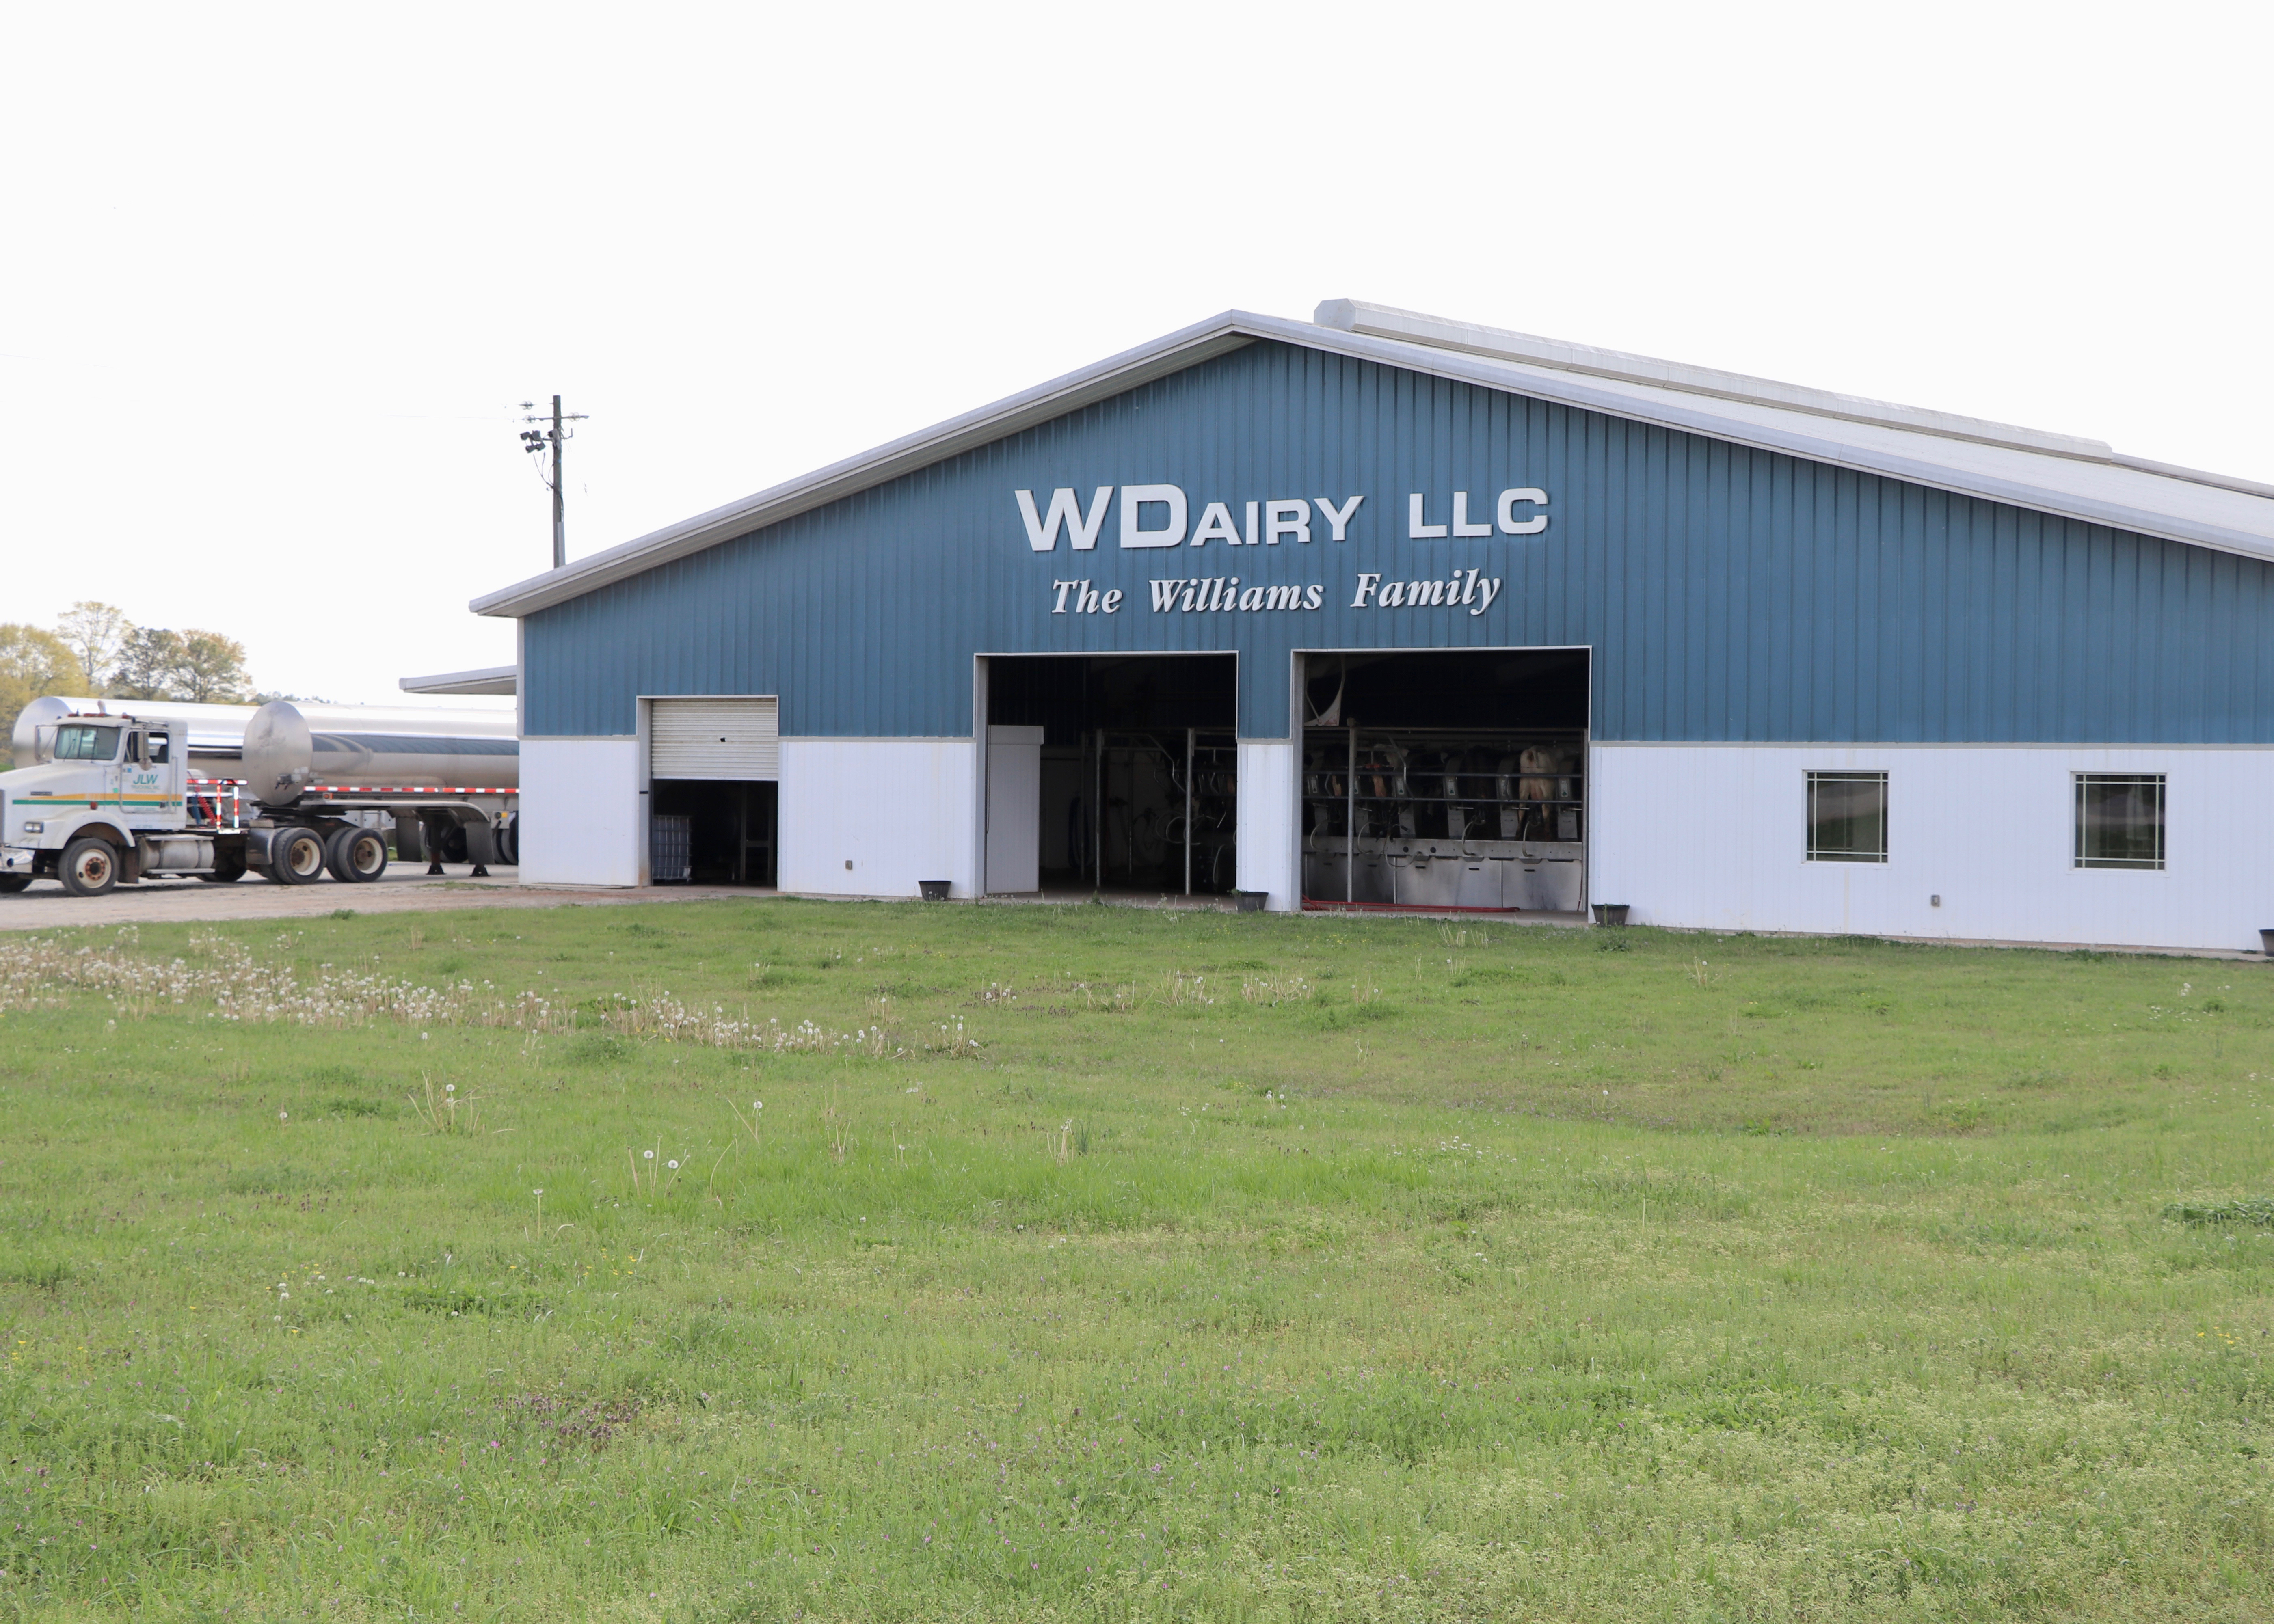 Everett Williams's dairy farm in Morgan County, WDairy, has been in operation since 1958 when his father transitioned from cotton farming to dairying. Today, a third generation is working on the farm.